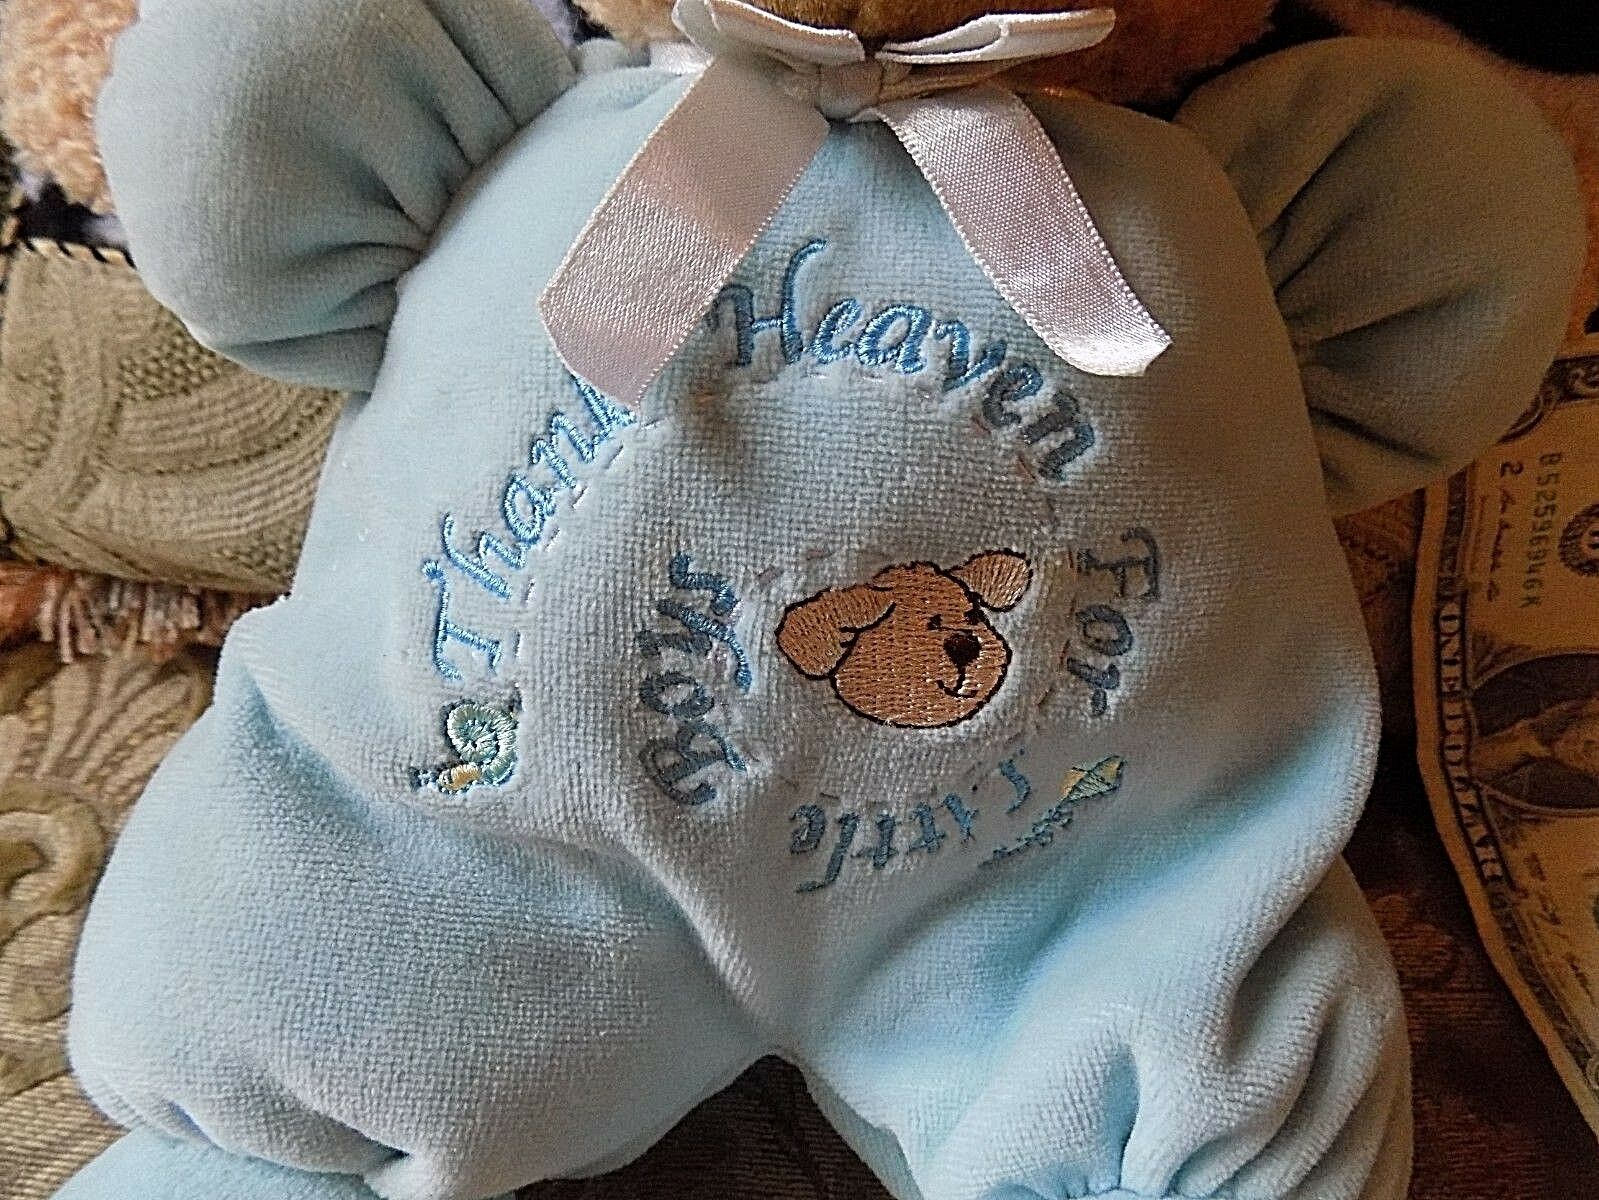 VINTAGE PRESTIGE BABY Marrone TEDDY BEAR STUFFED ANIMAL PLUSH TOY blu